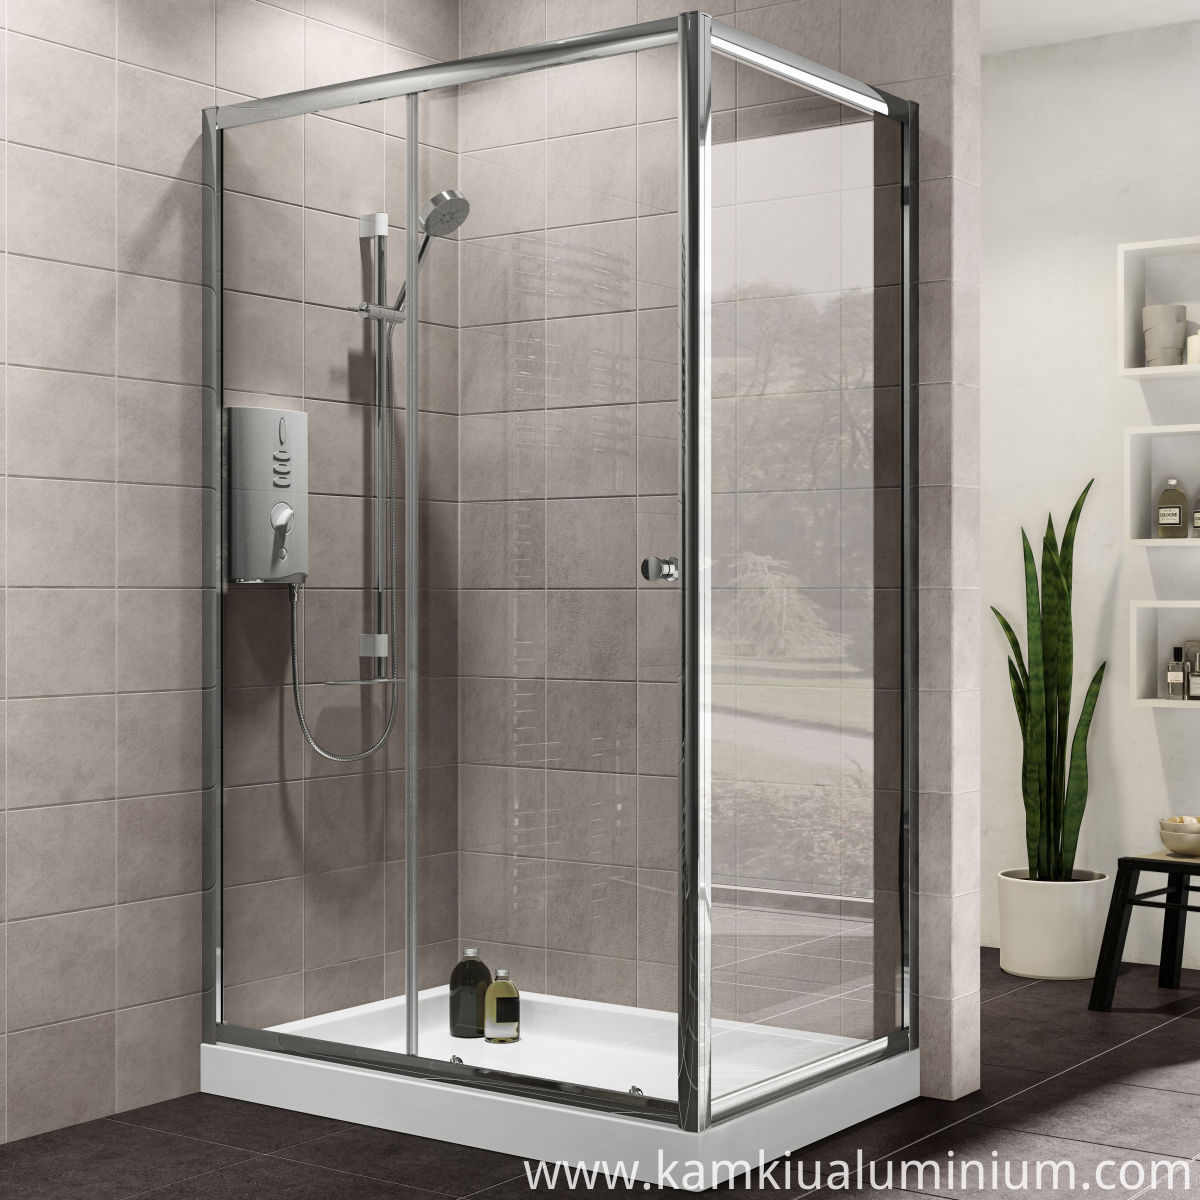 Aluminium Shower Enclosure